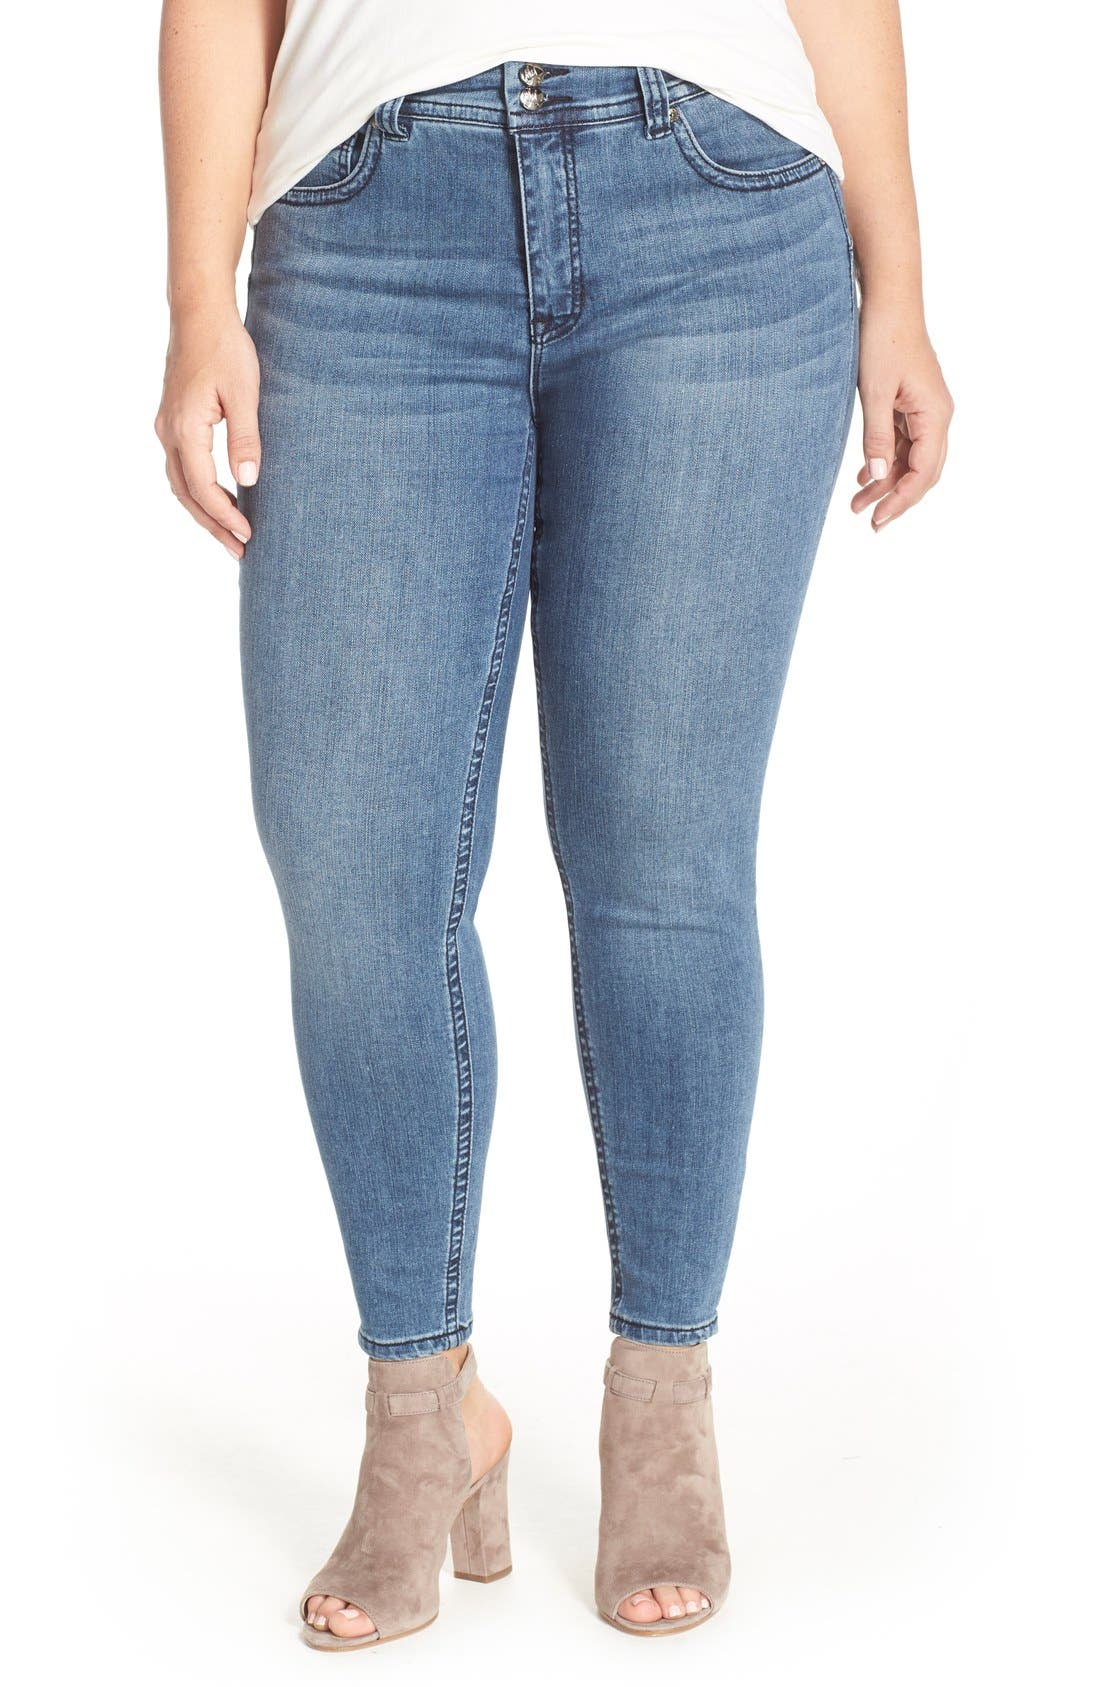 Alternate Image 1 Selected - Melissa McCarthy Seven7 High Waist Stretch Pencil Jeans (Hampton) (Plus Size)